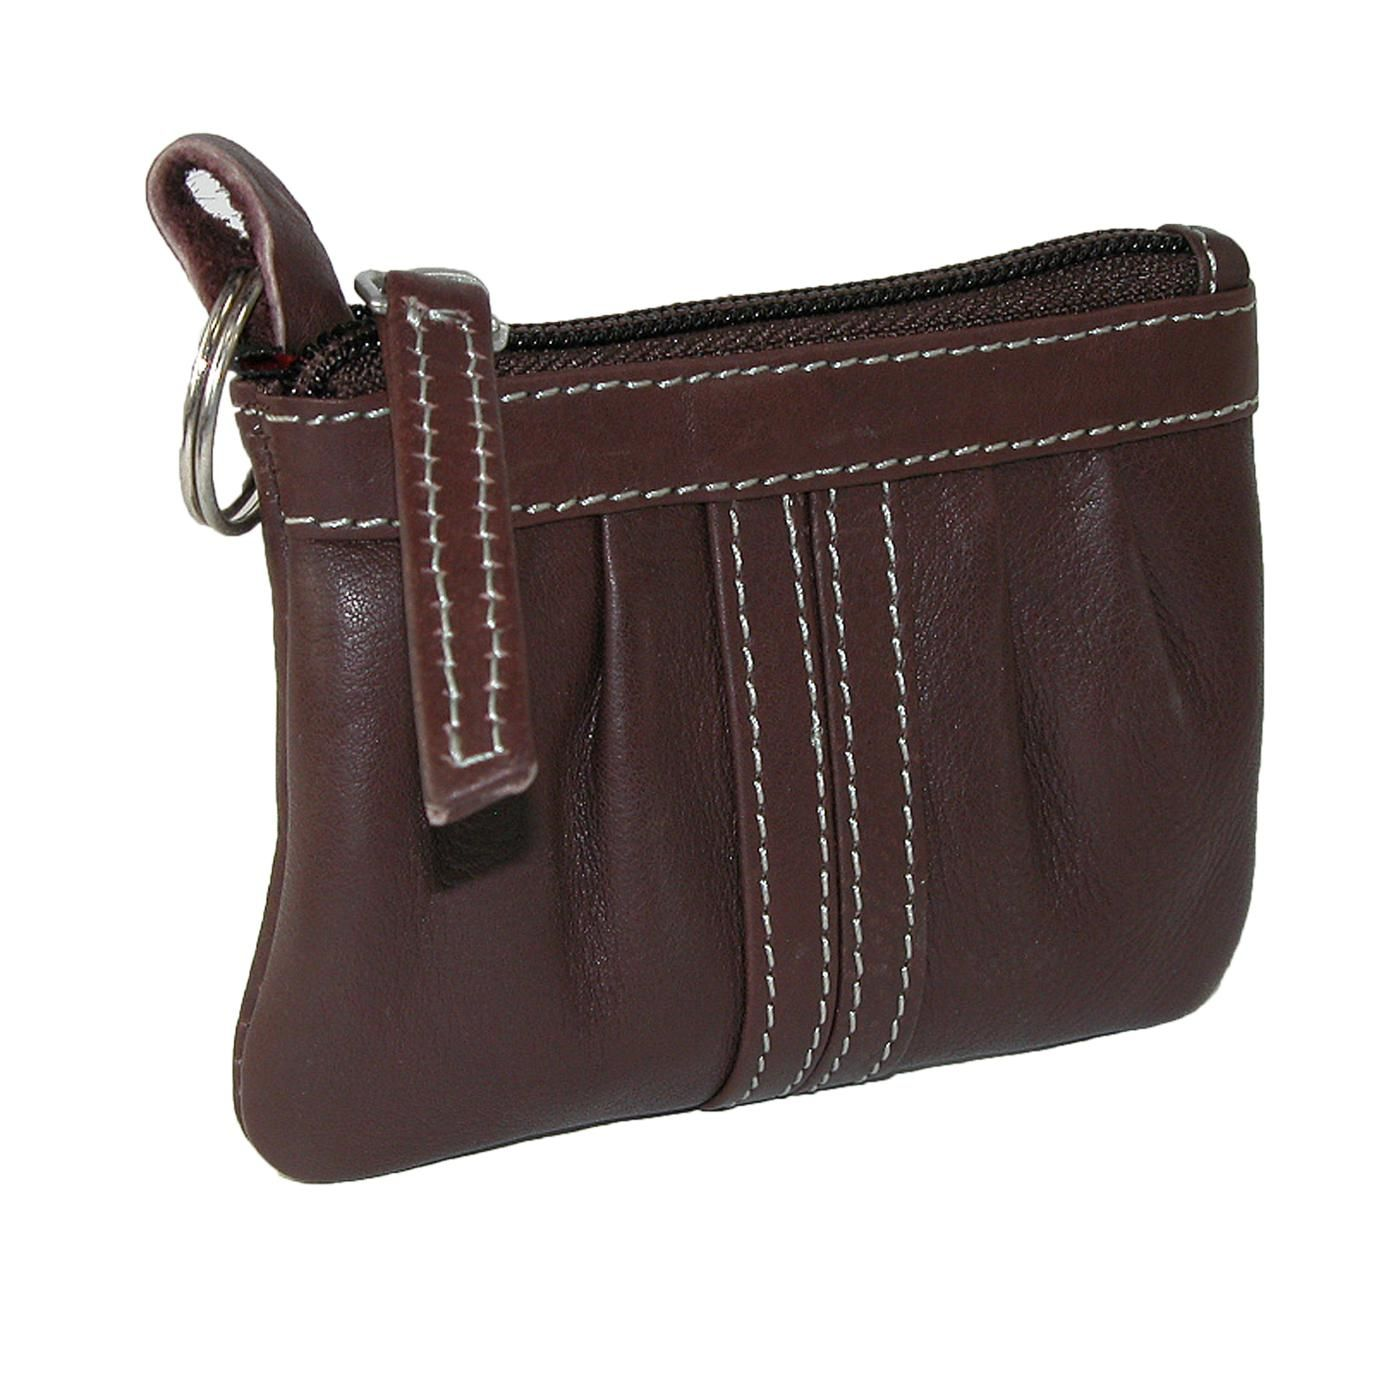 Womens Leather Zipper Coin Purse with Key Ring by Paul & Taylor. Features an attached key ring